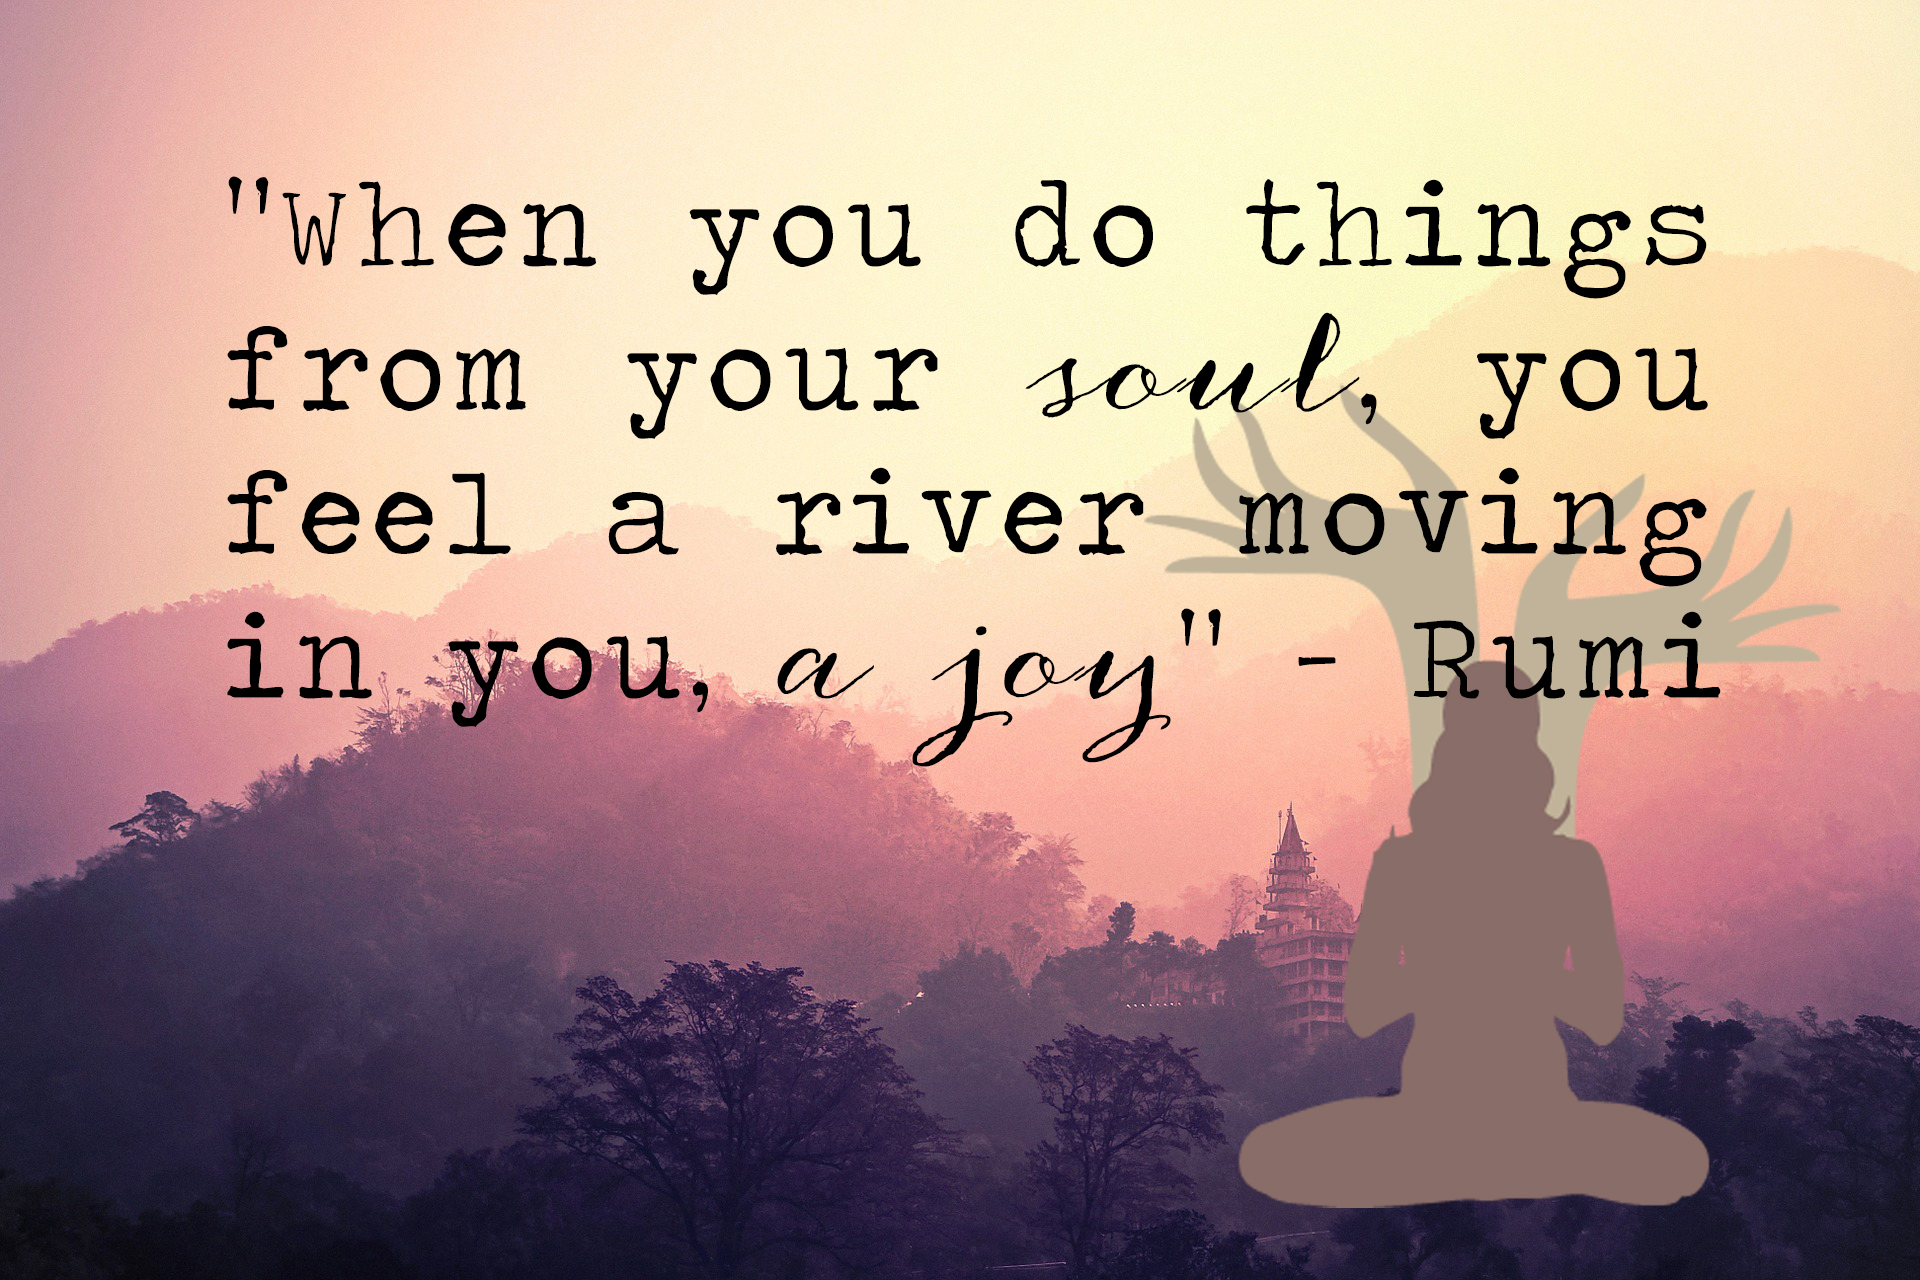 When you do things from your soul, you feel a river moving in you, a joy